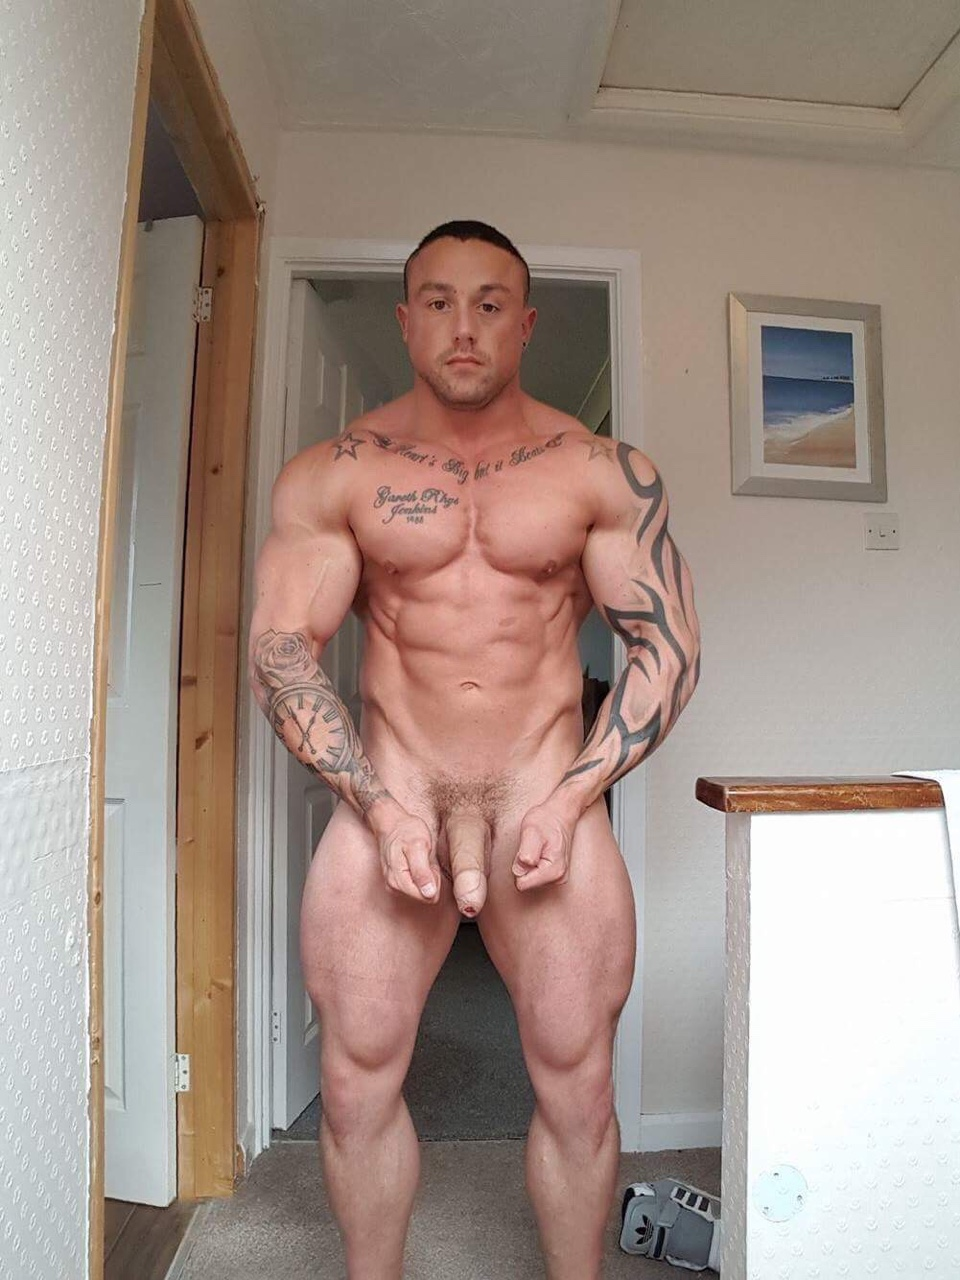 Naked Amateur Guys Hung Uncut Bodybuilder Shows Off Naked-2523